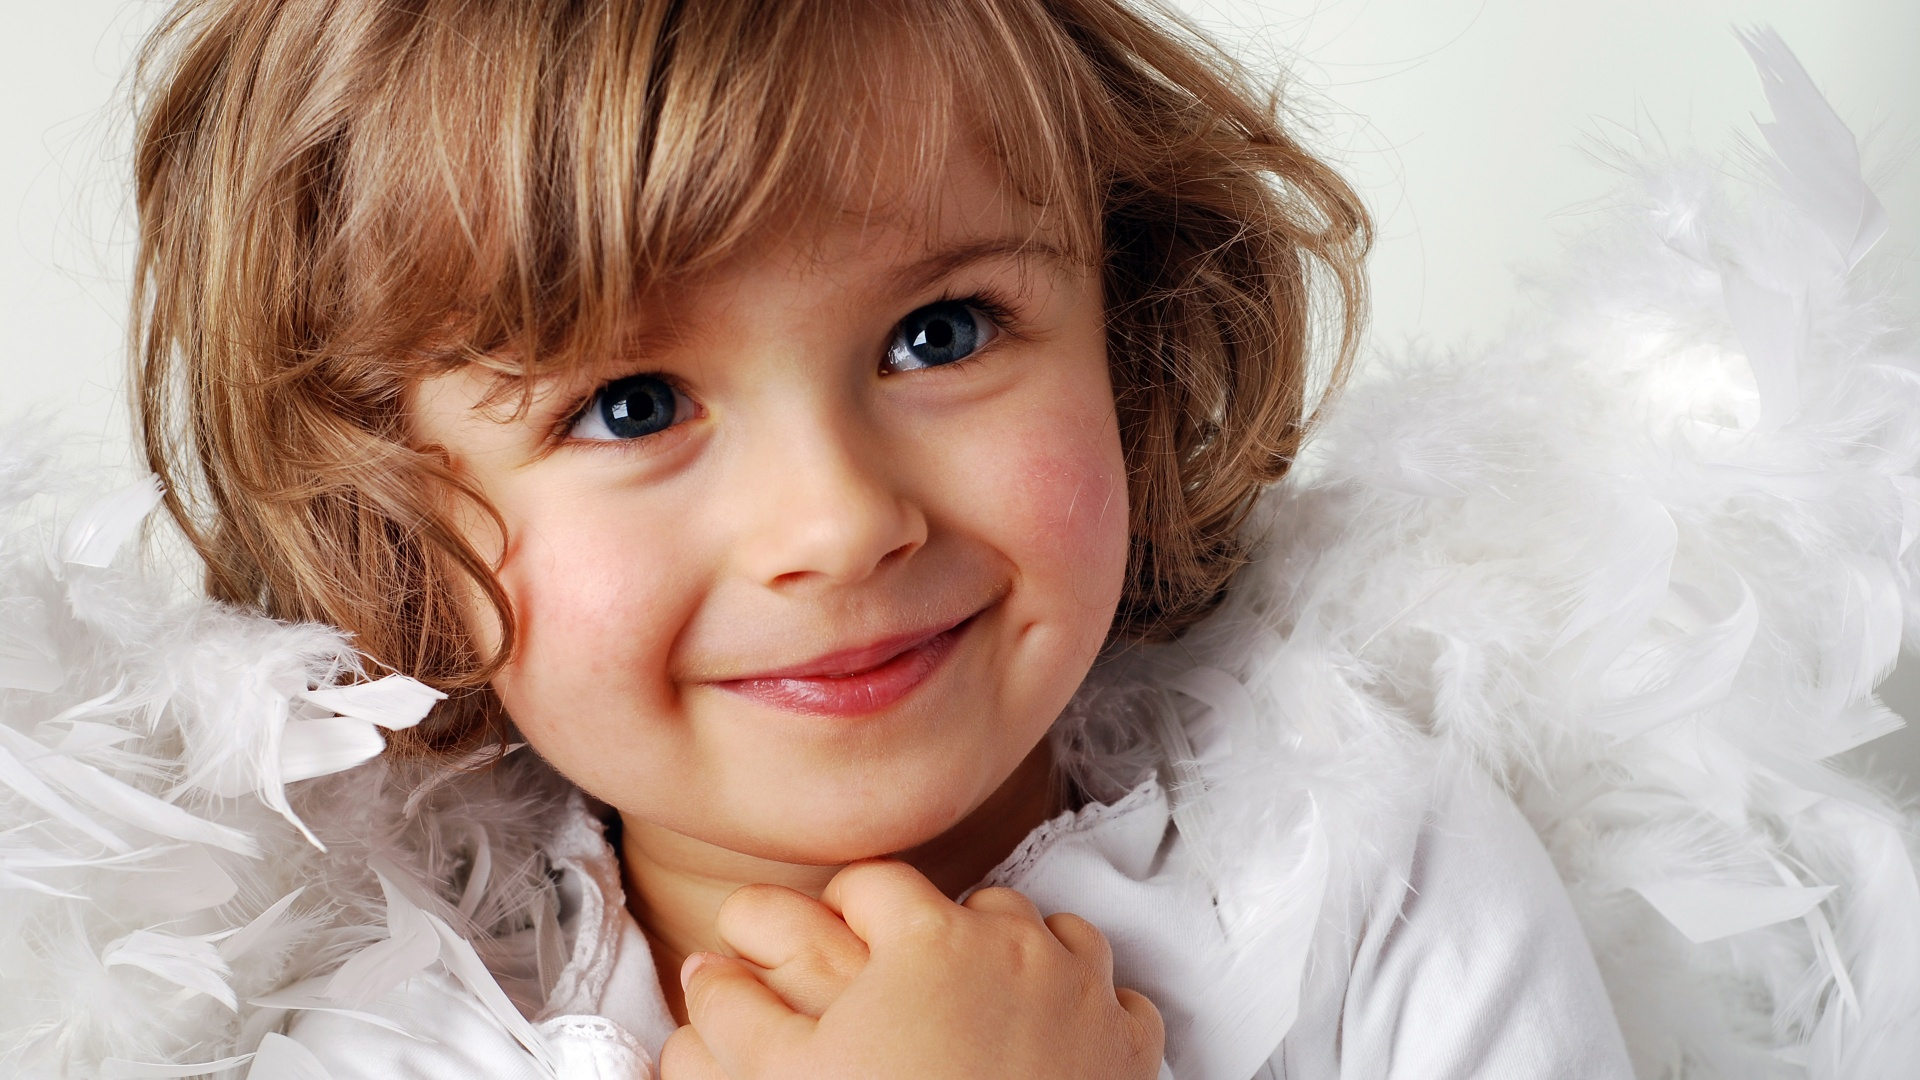 Cute Little Girls Laughing Wallpaper Cute Haircut Baby Girl Wallpapers In Jpg Format For Free